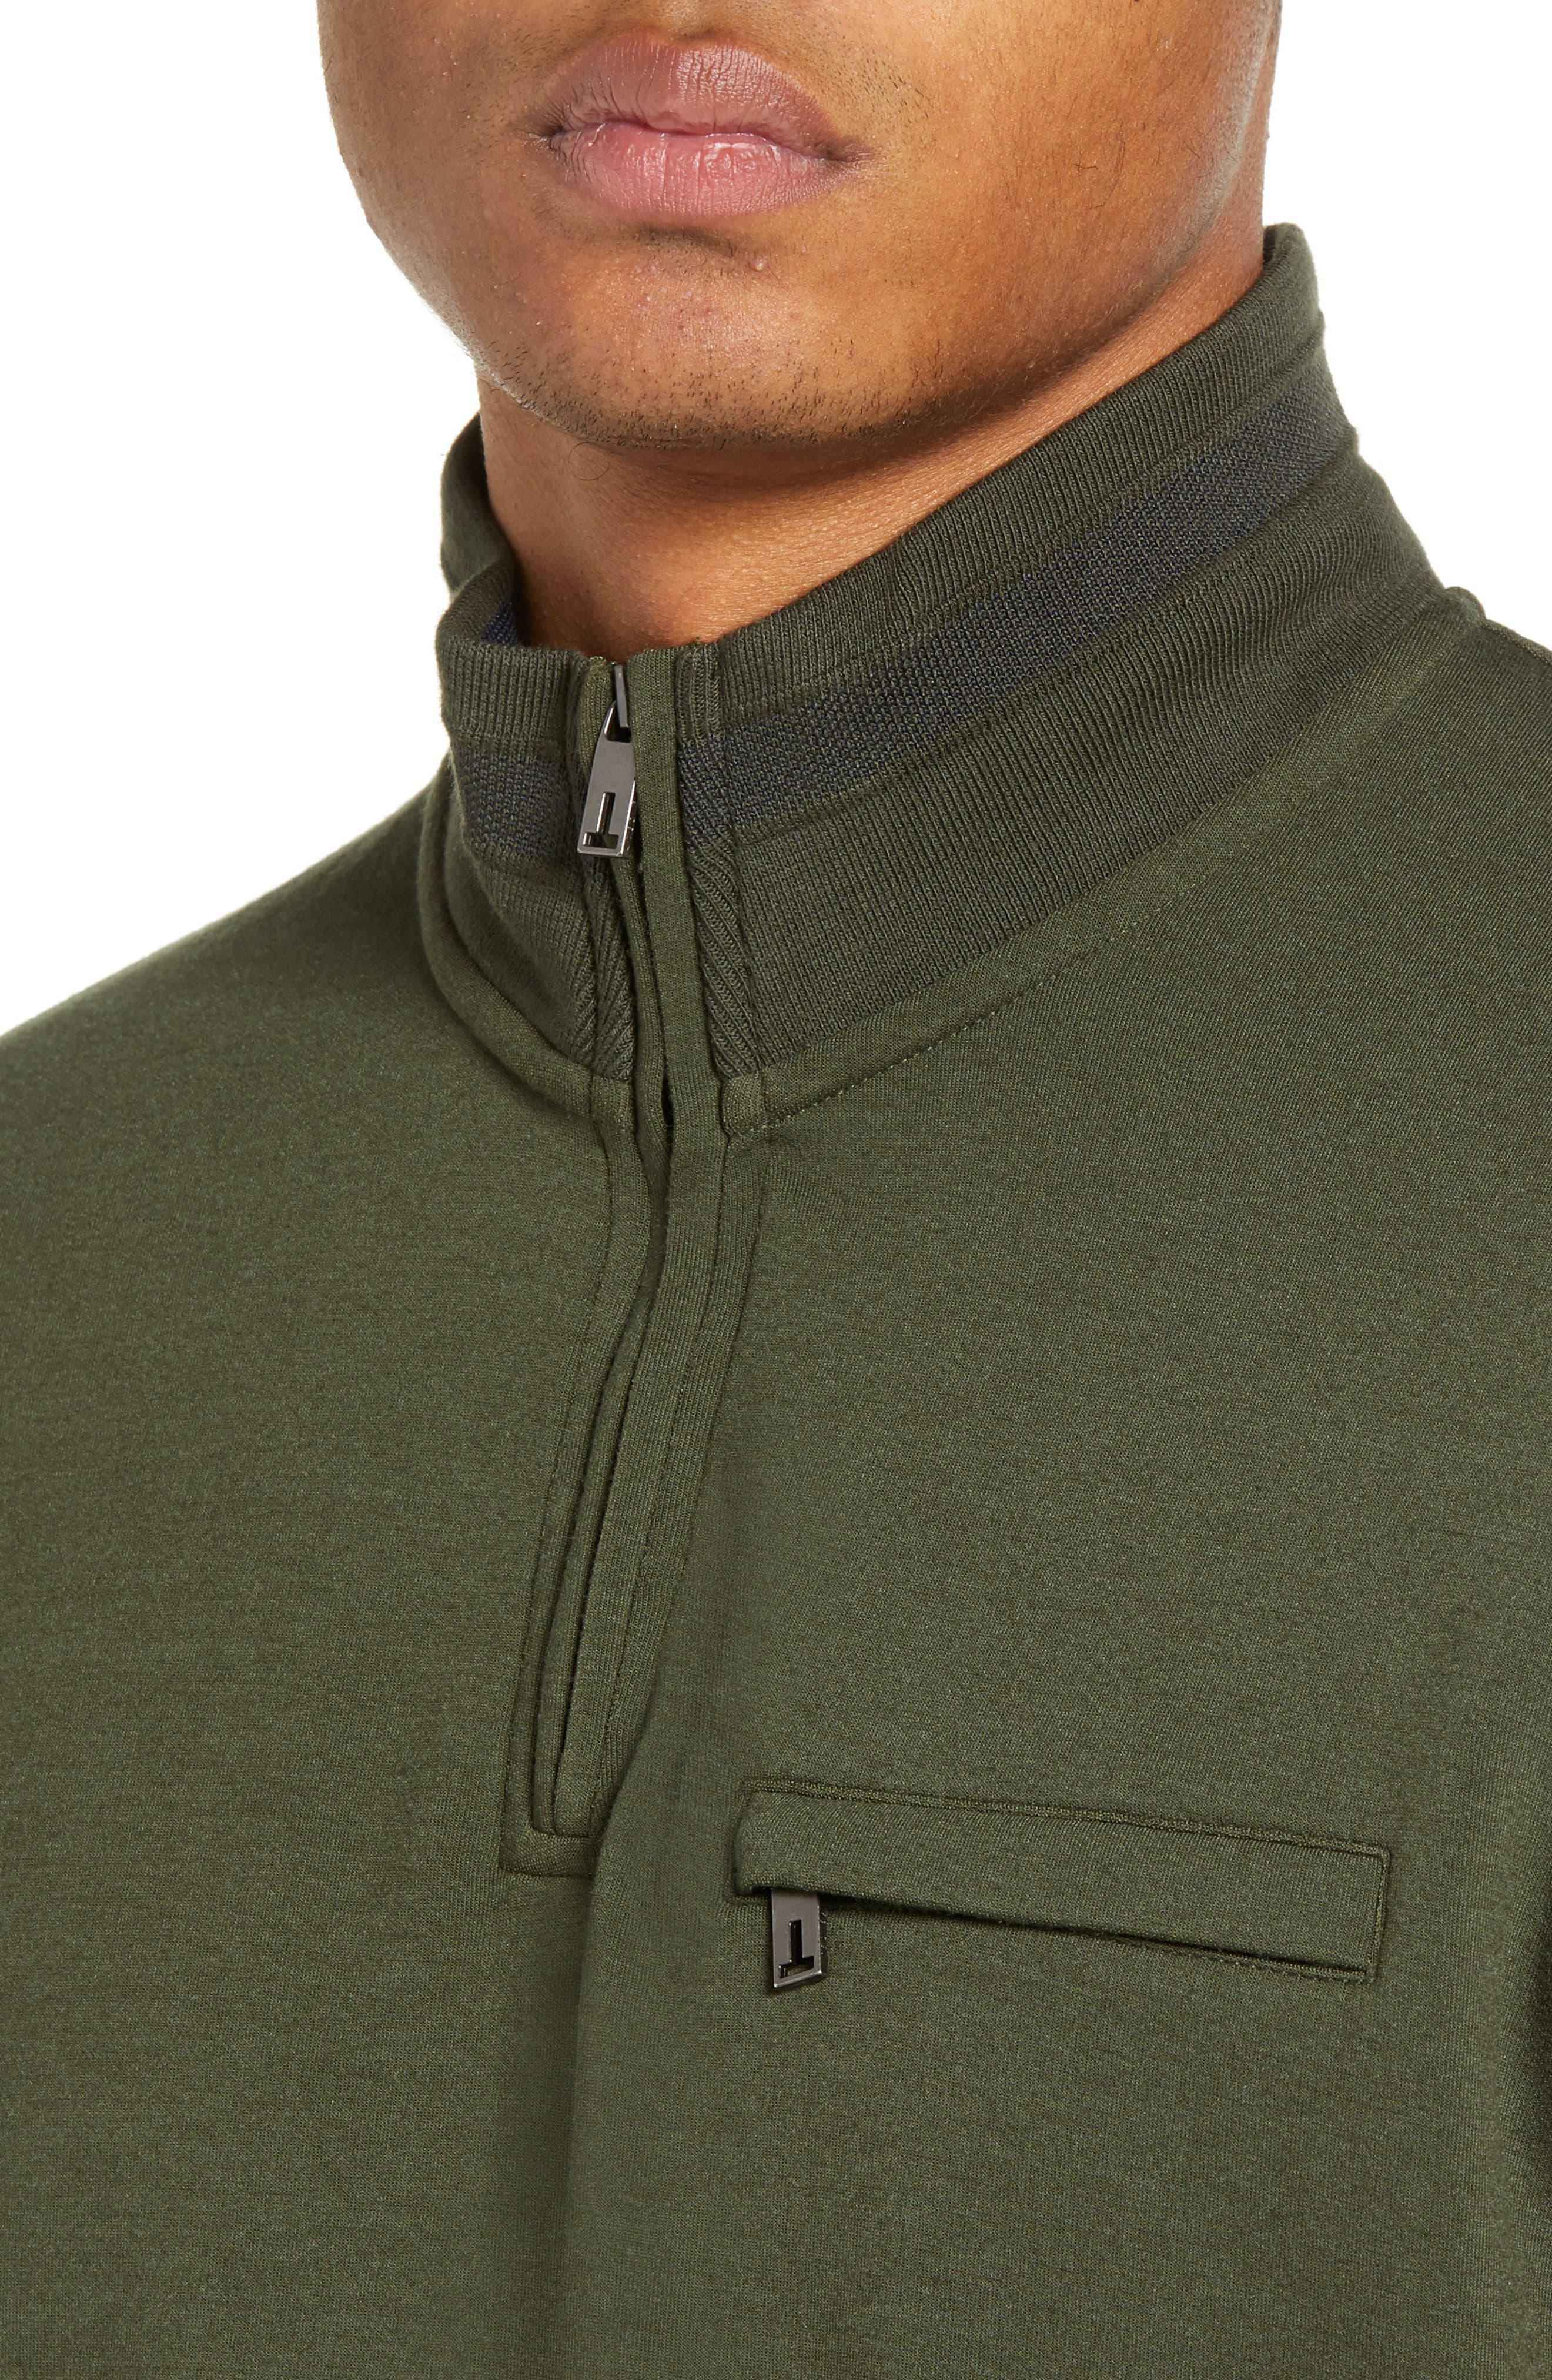 Leevit Quarter Zip Pullover,                             Alternate thumbnail 4, color,                             KHAKI